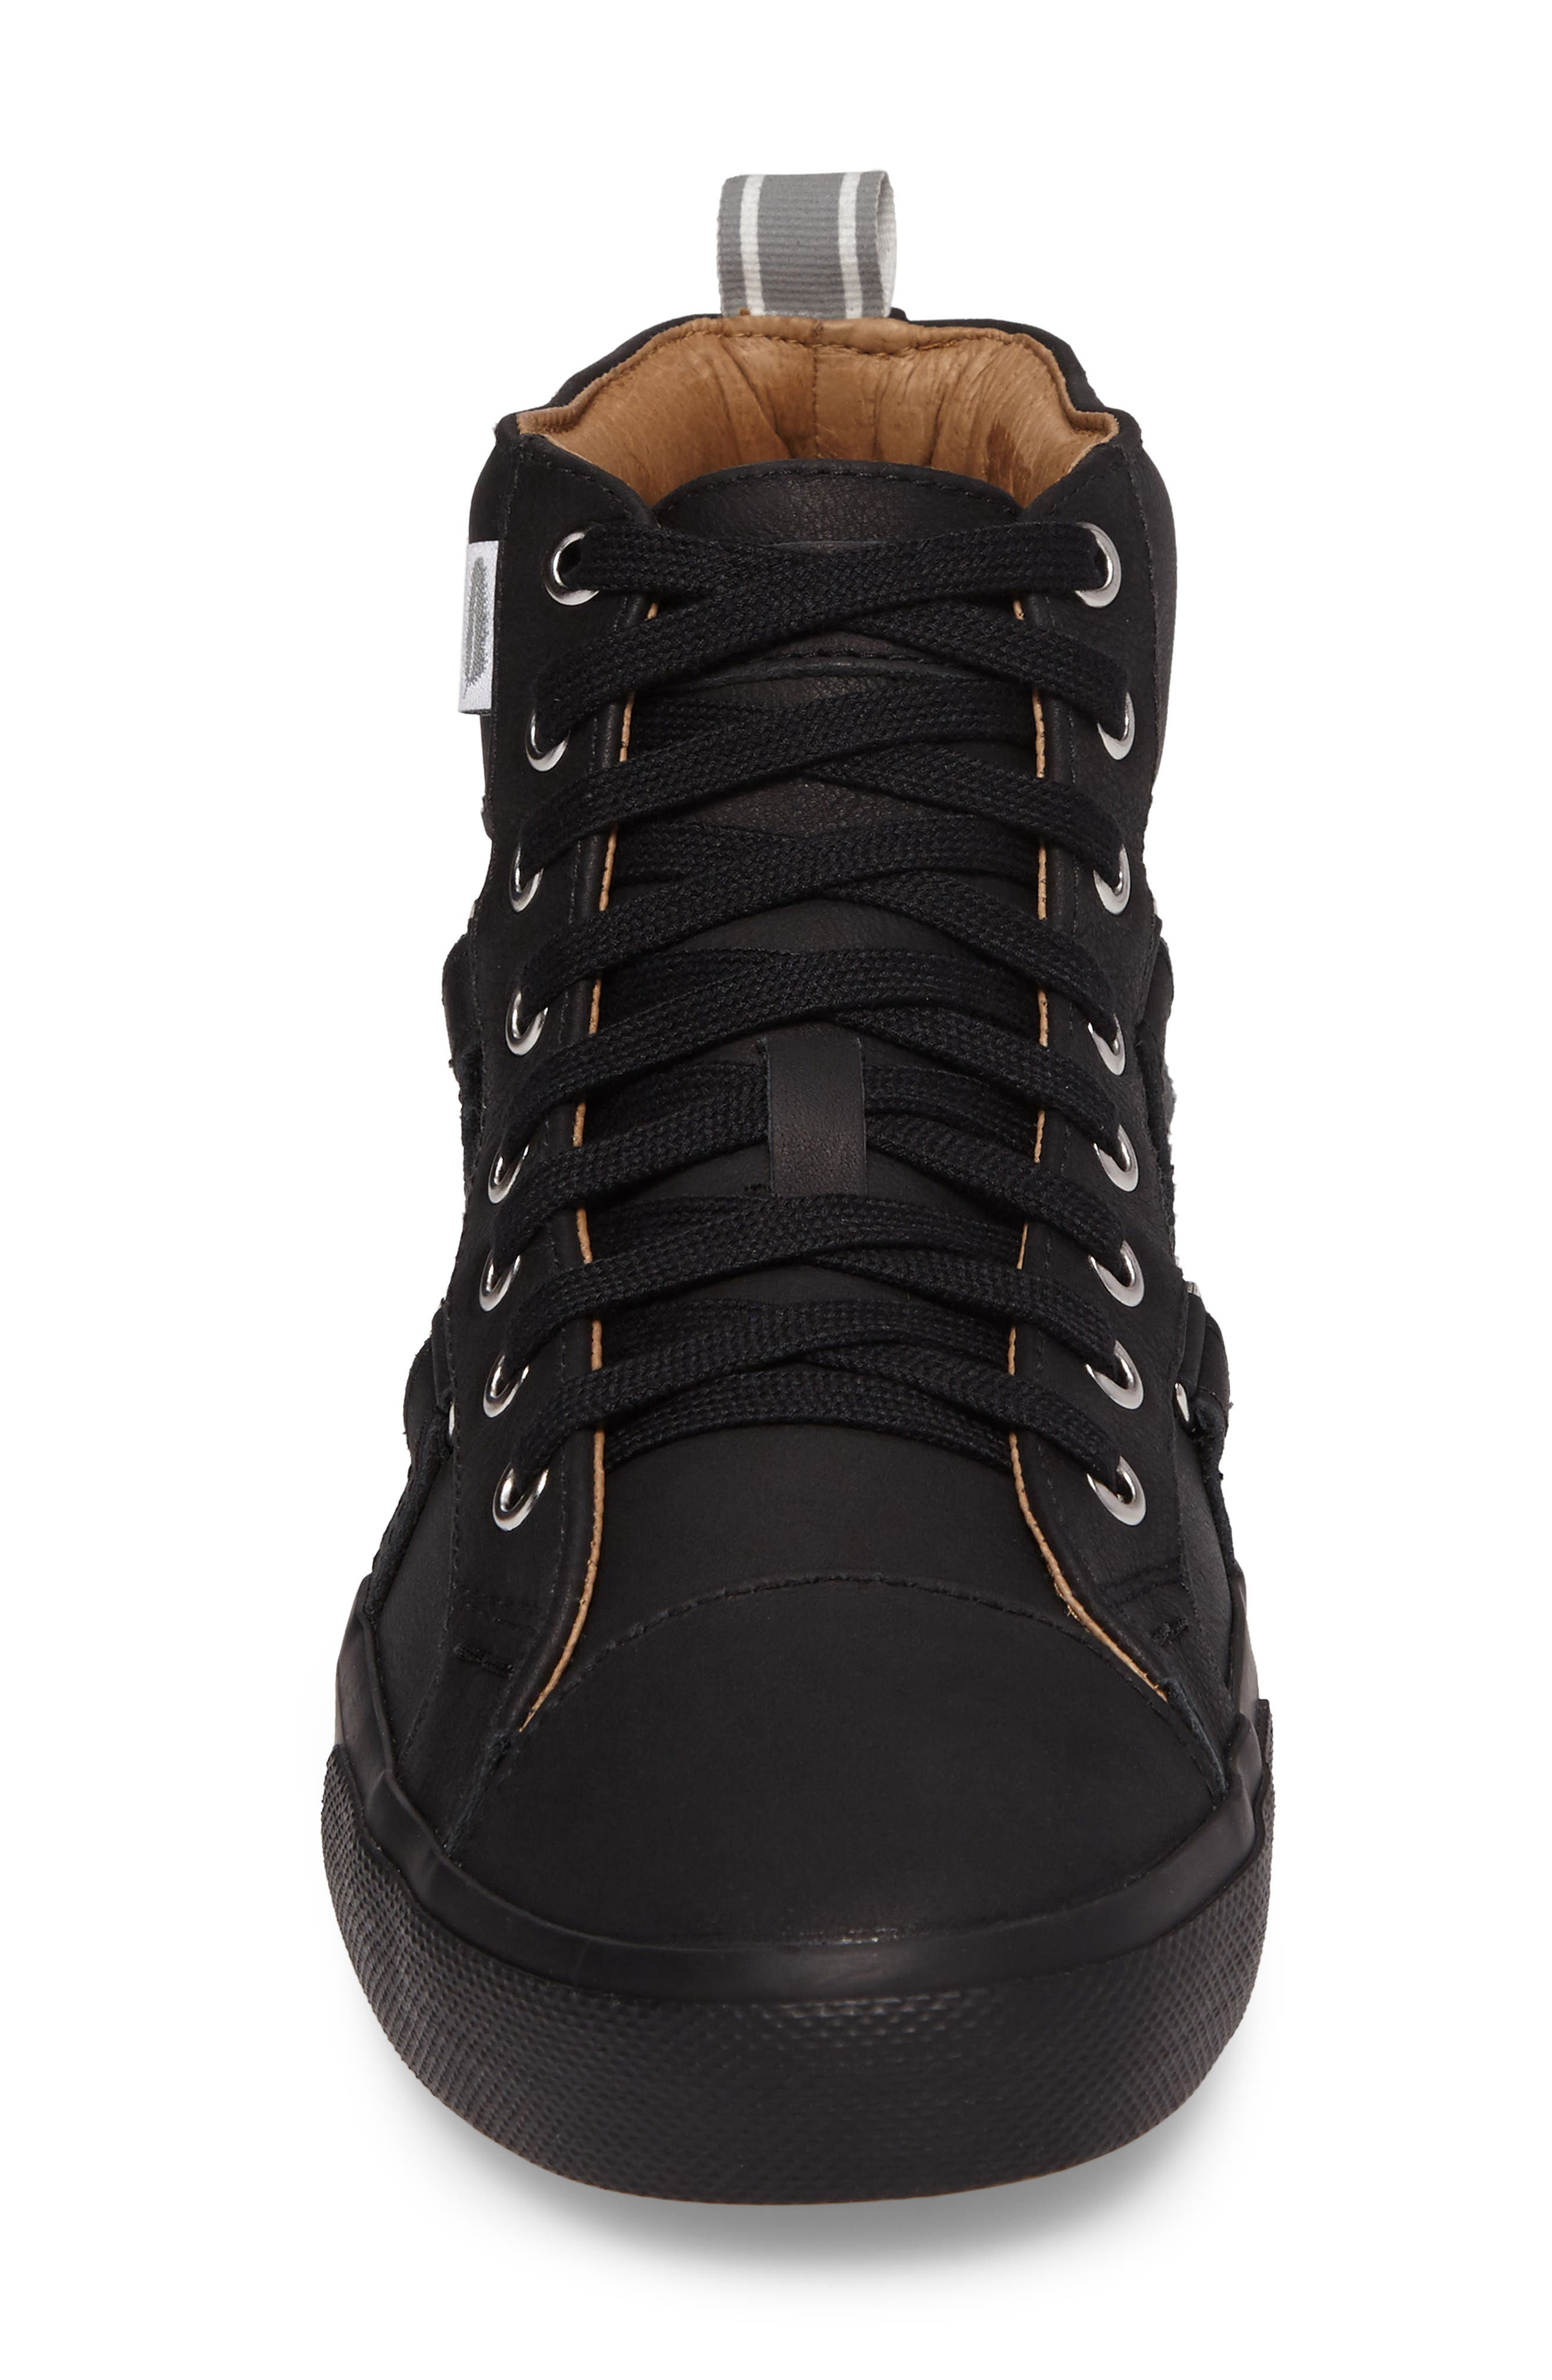 Signature High Top Sneaker,                             Alternate thumbnail 4, color,                             NERO LEATHER